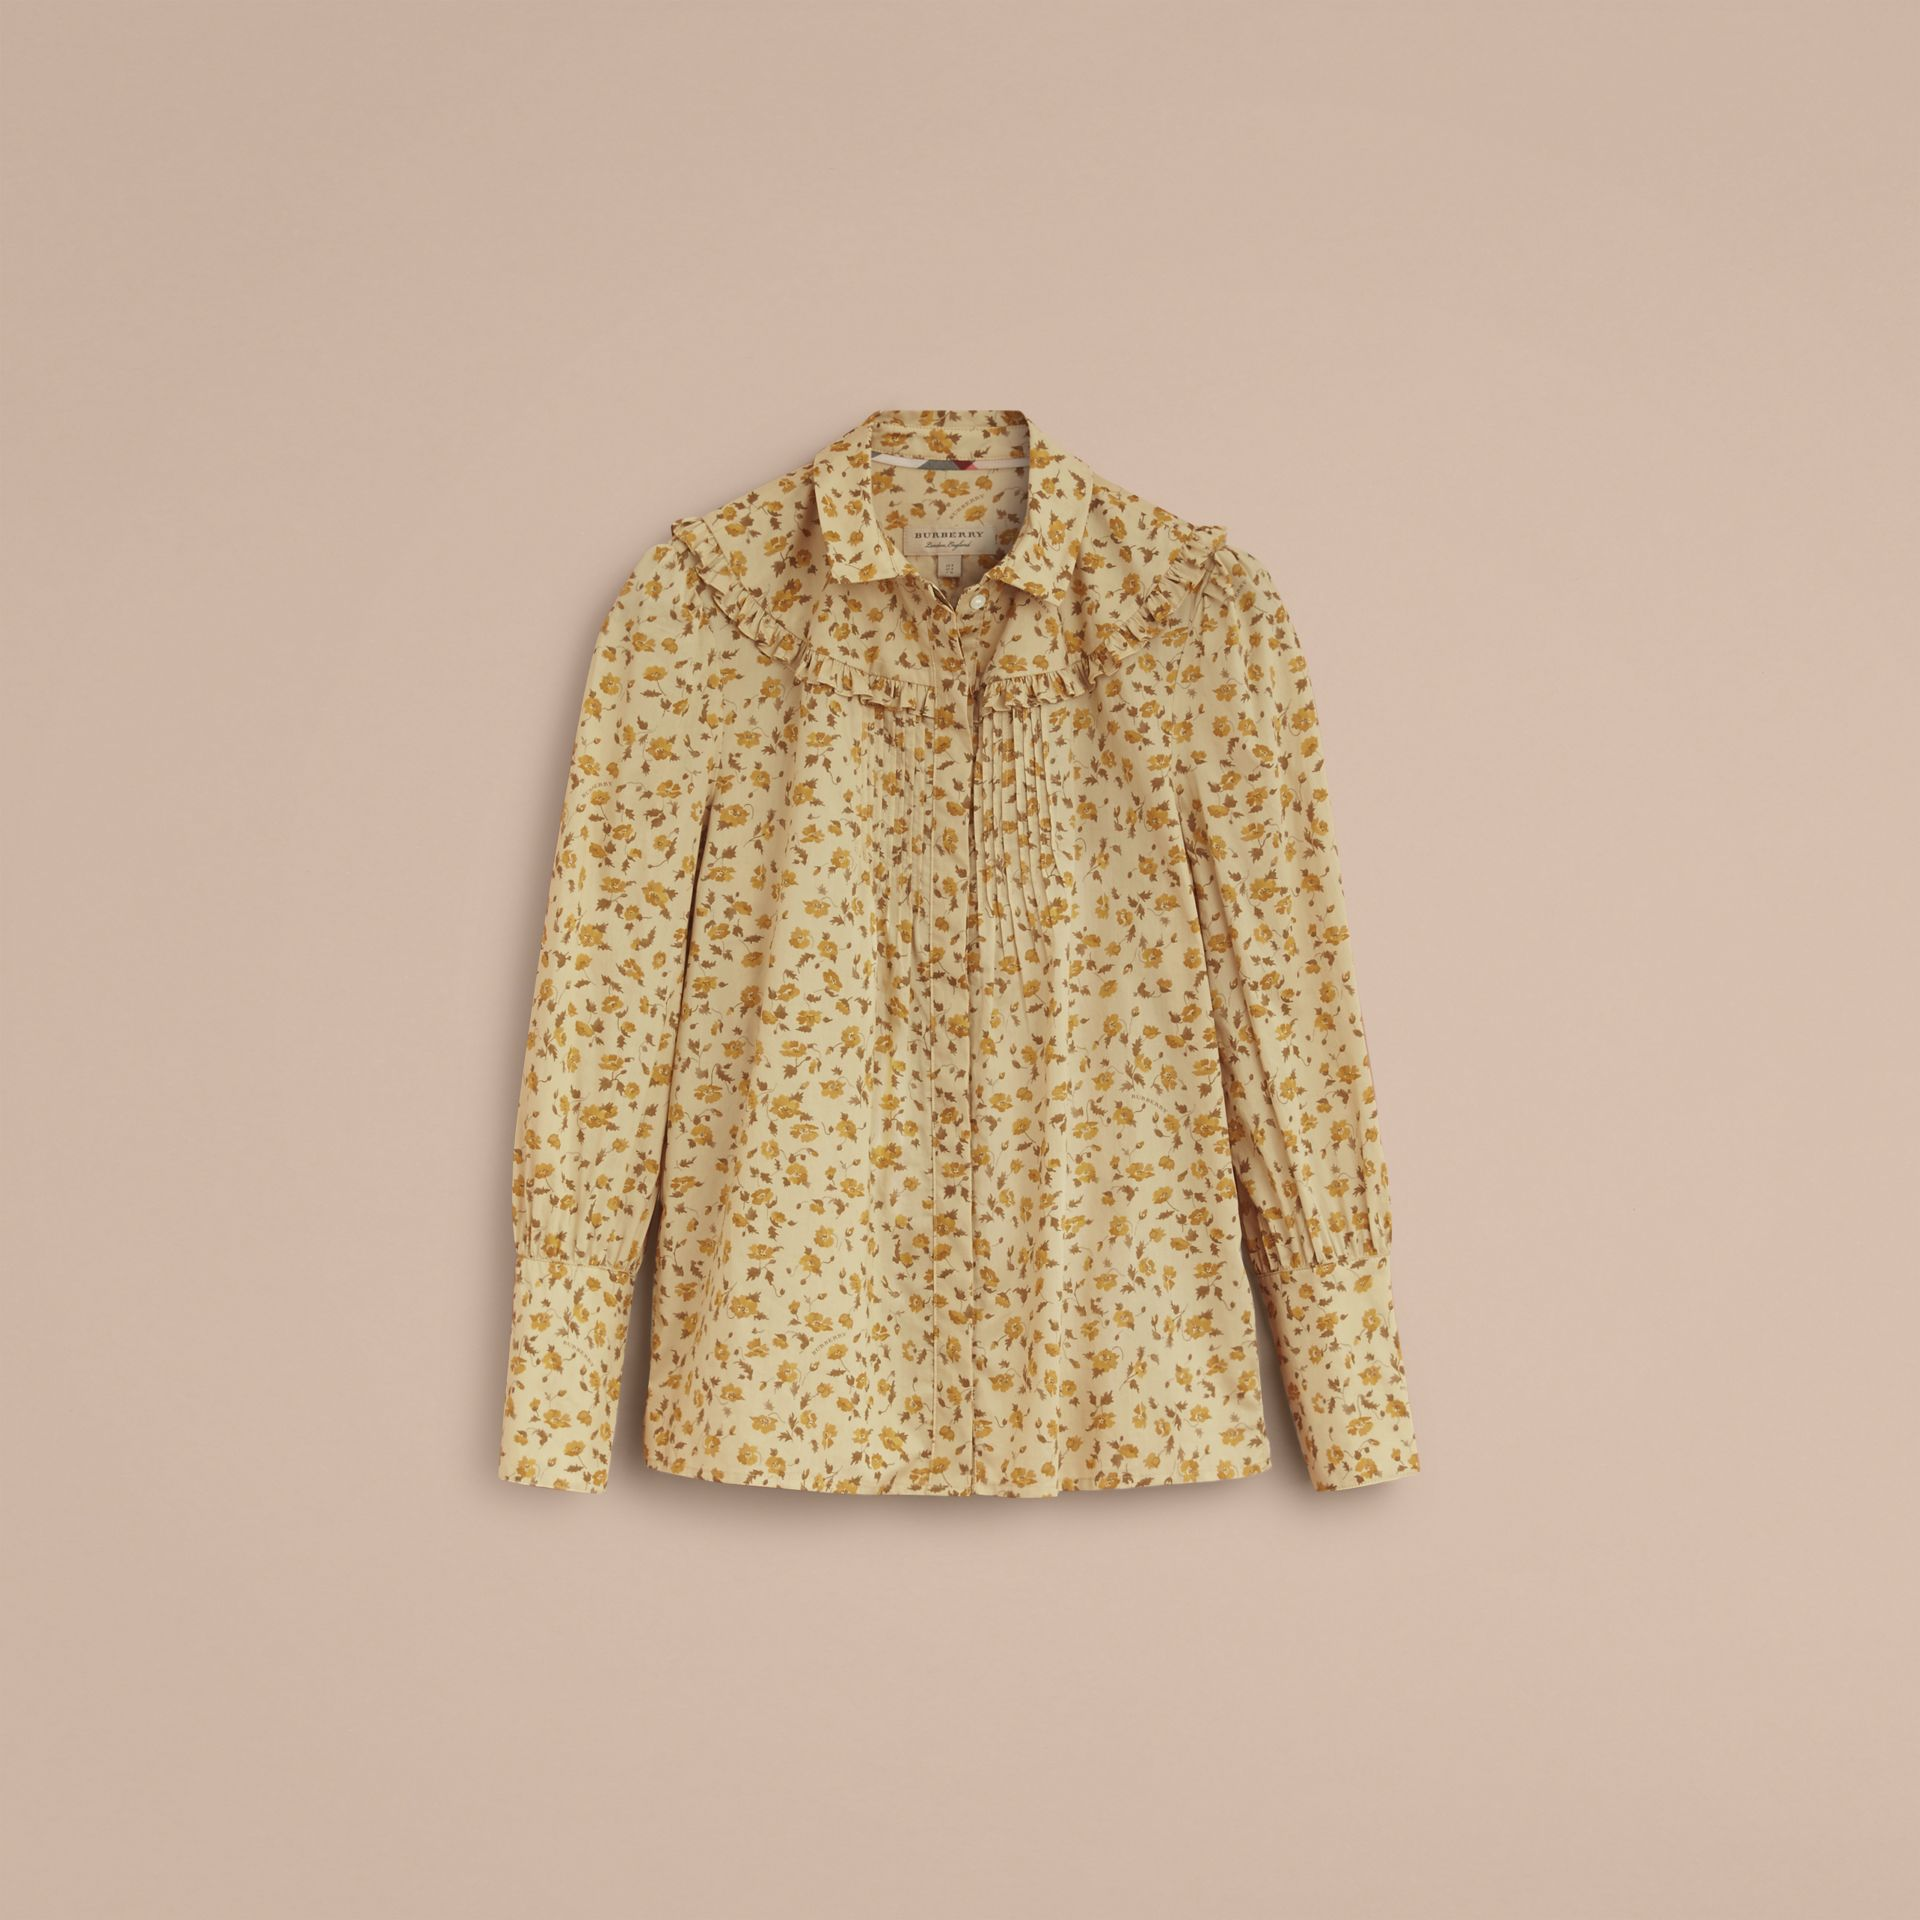 Ruffle Yoke Floral Print Cotton Shirt in Chalk Yellow - Women | Burberry - gallery image 4